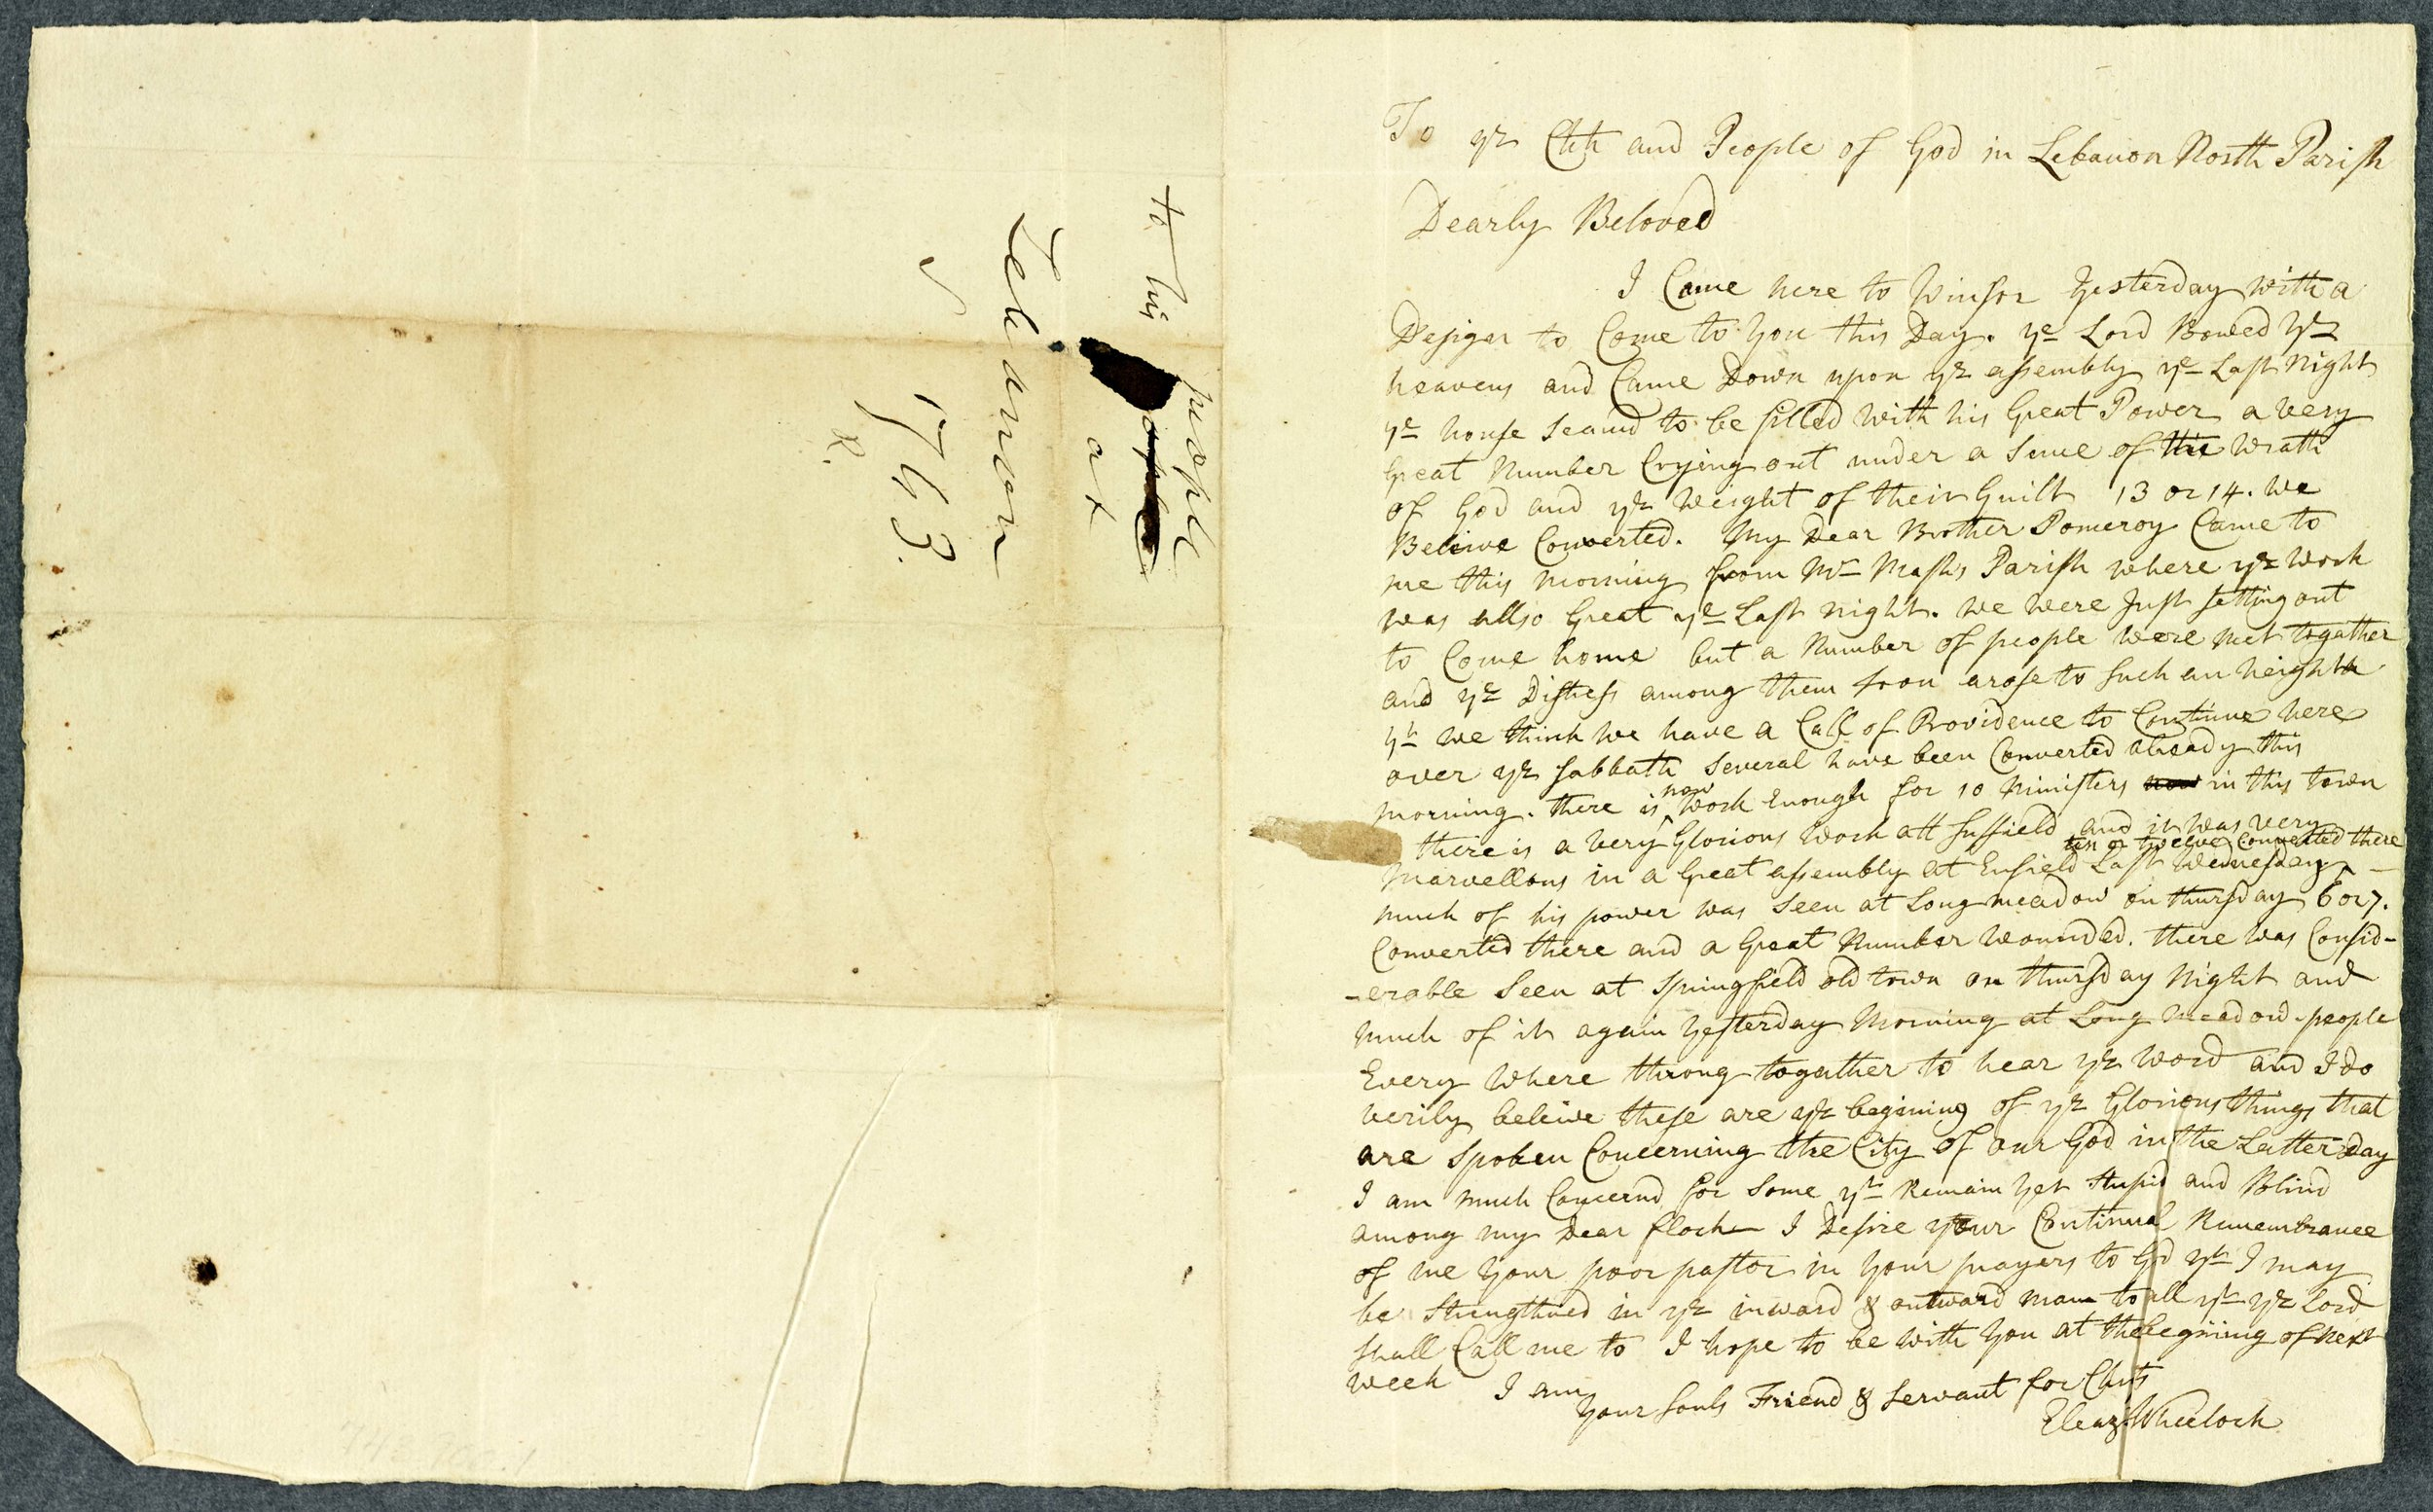 Eleazar Wheelock to the North Parish Church, July 11, 1741. Courtesy of Dartmouth College Library.